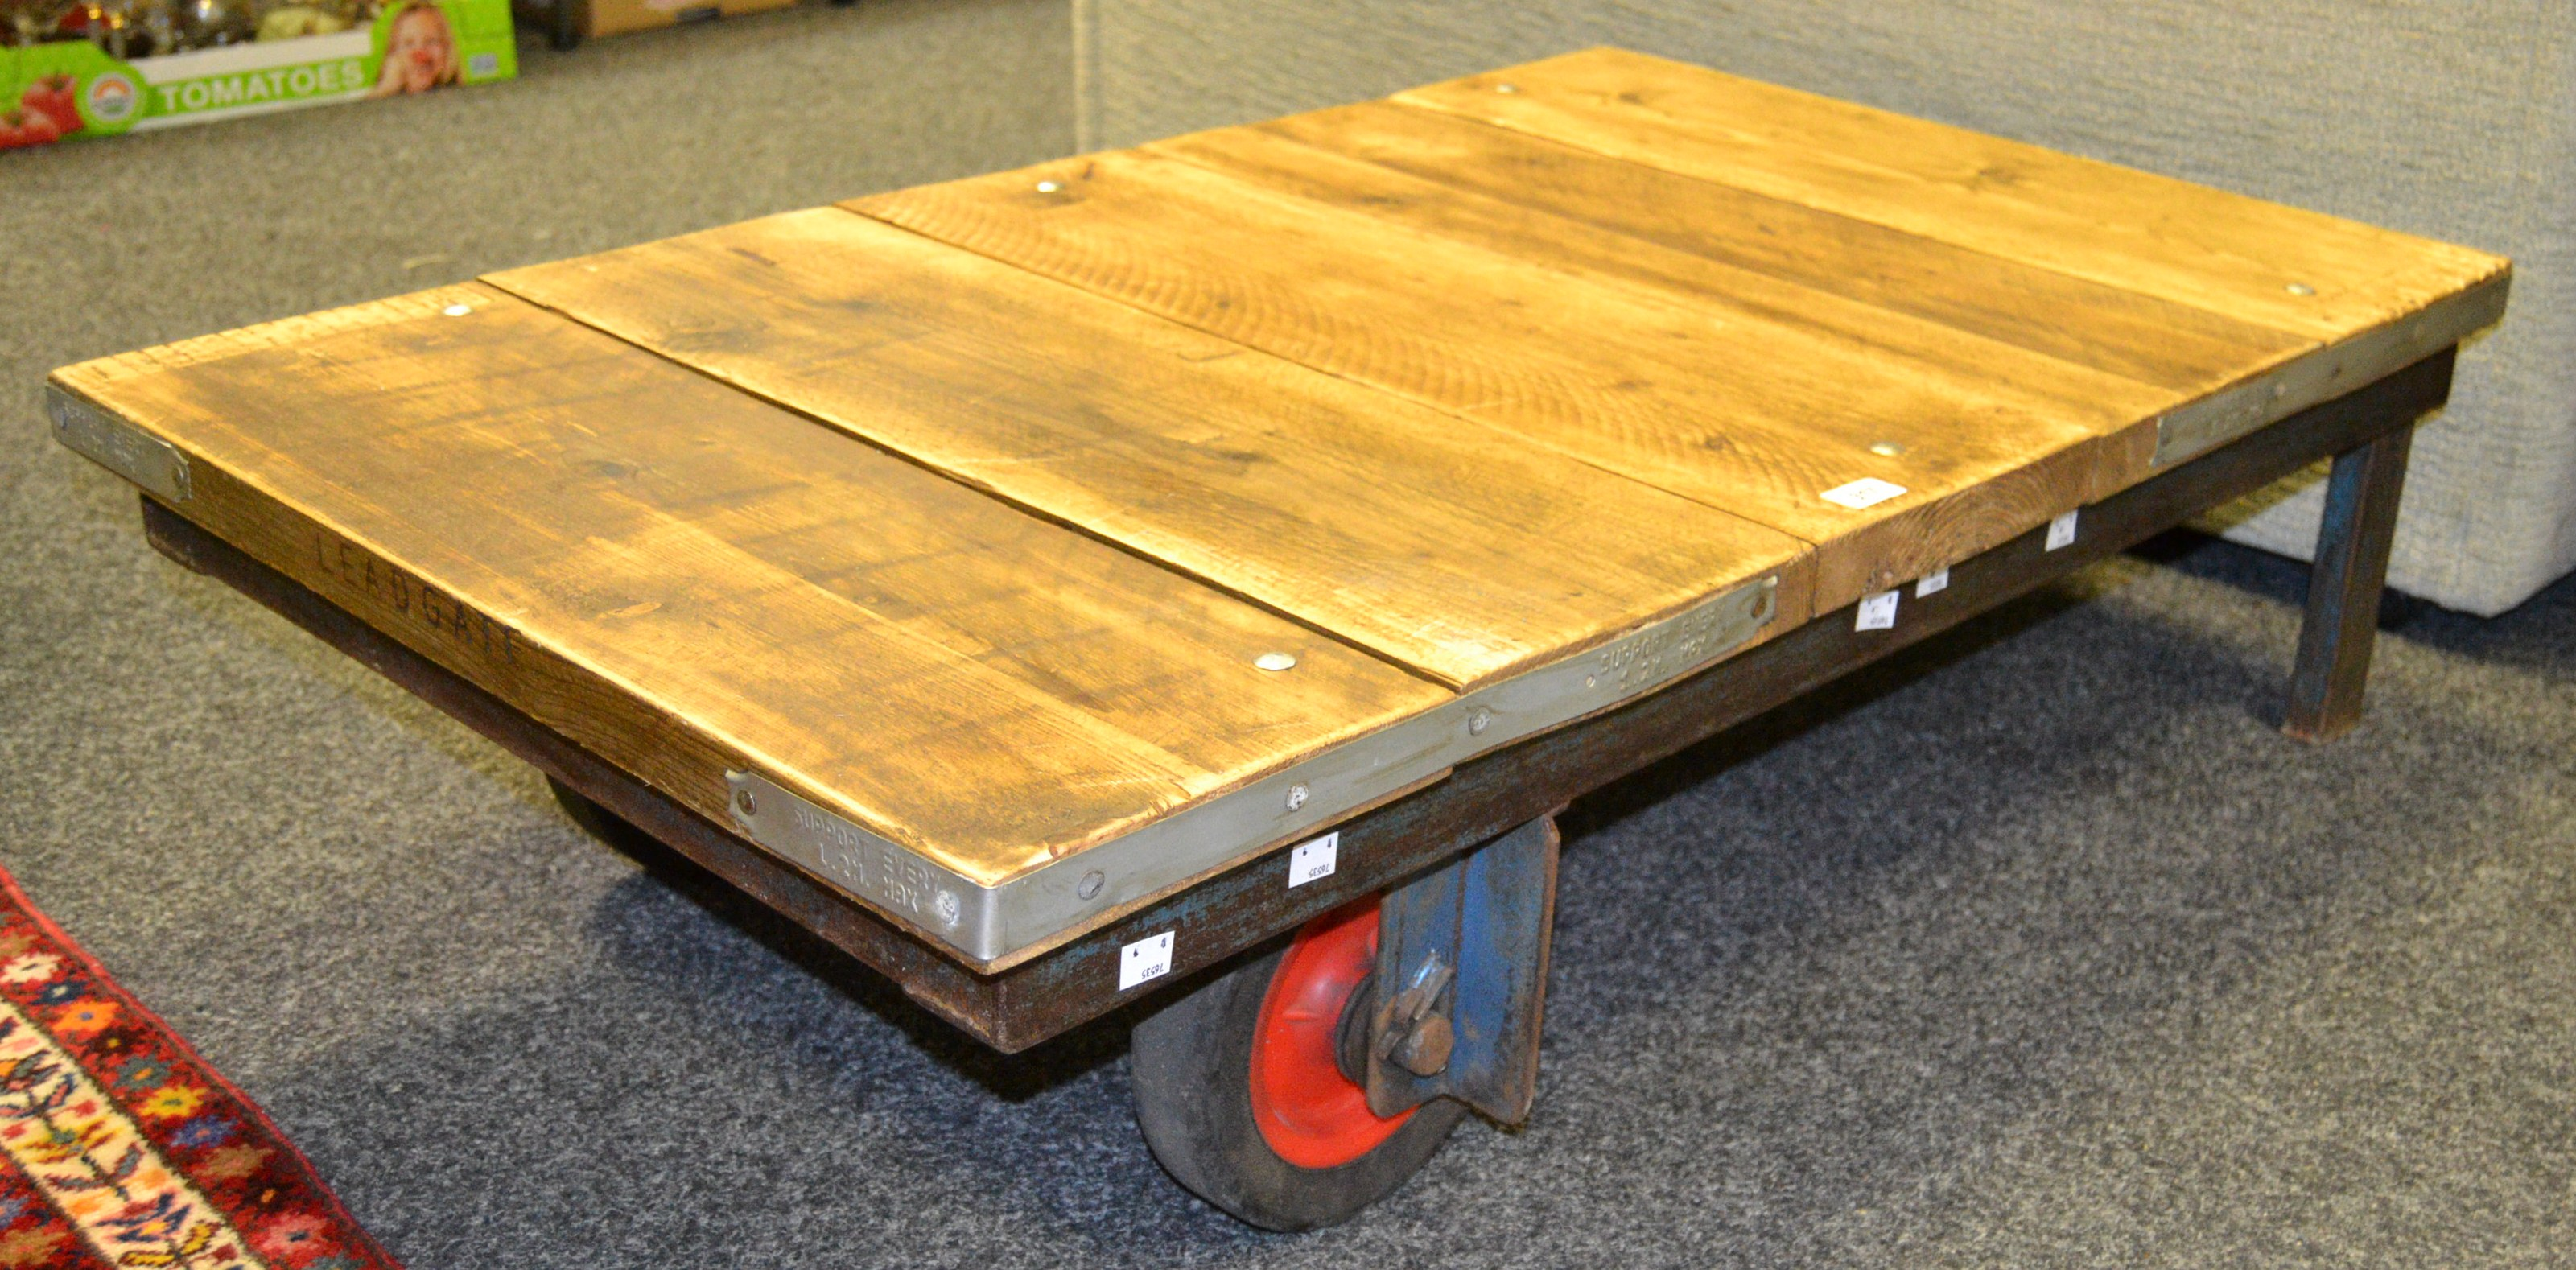 Lot 317 - Industrial Salvage - a salvaged scaffolding planked coffee table on an earlier industrial base,